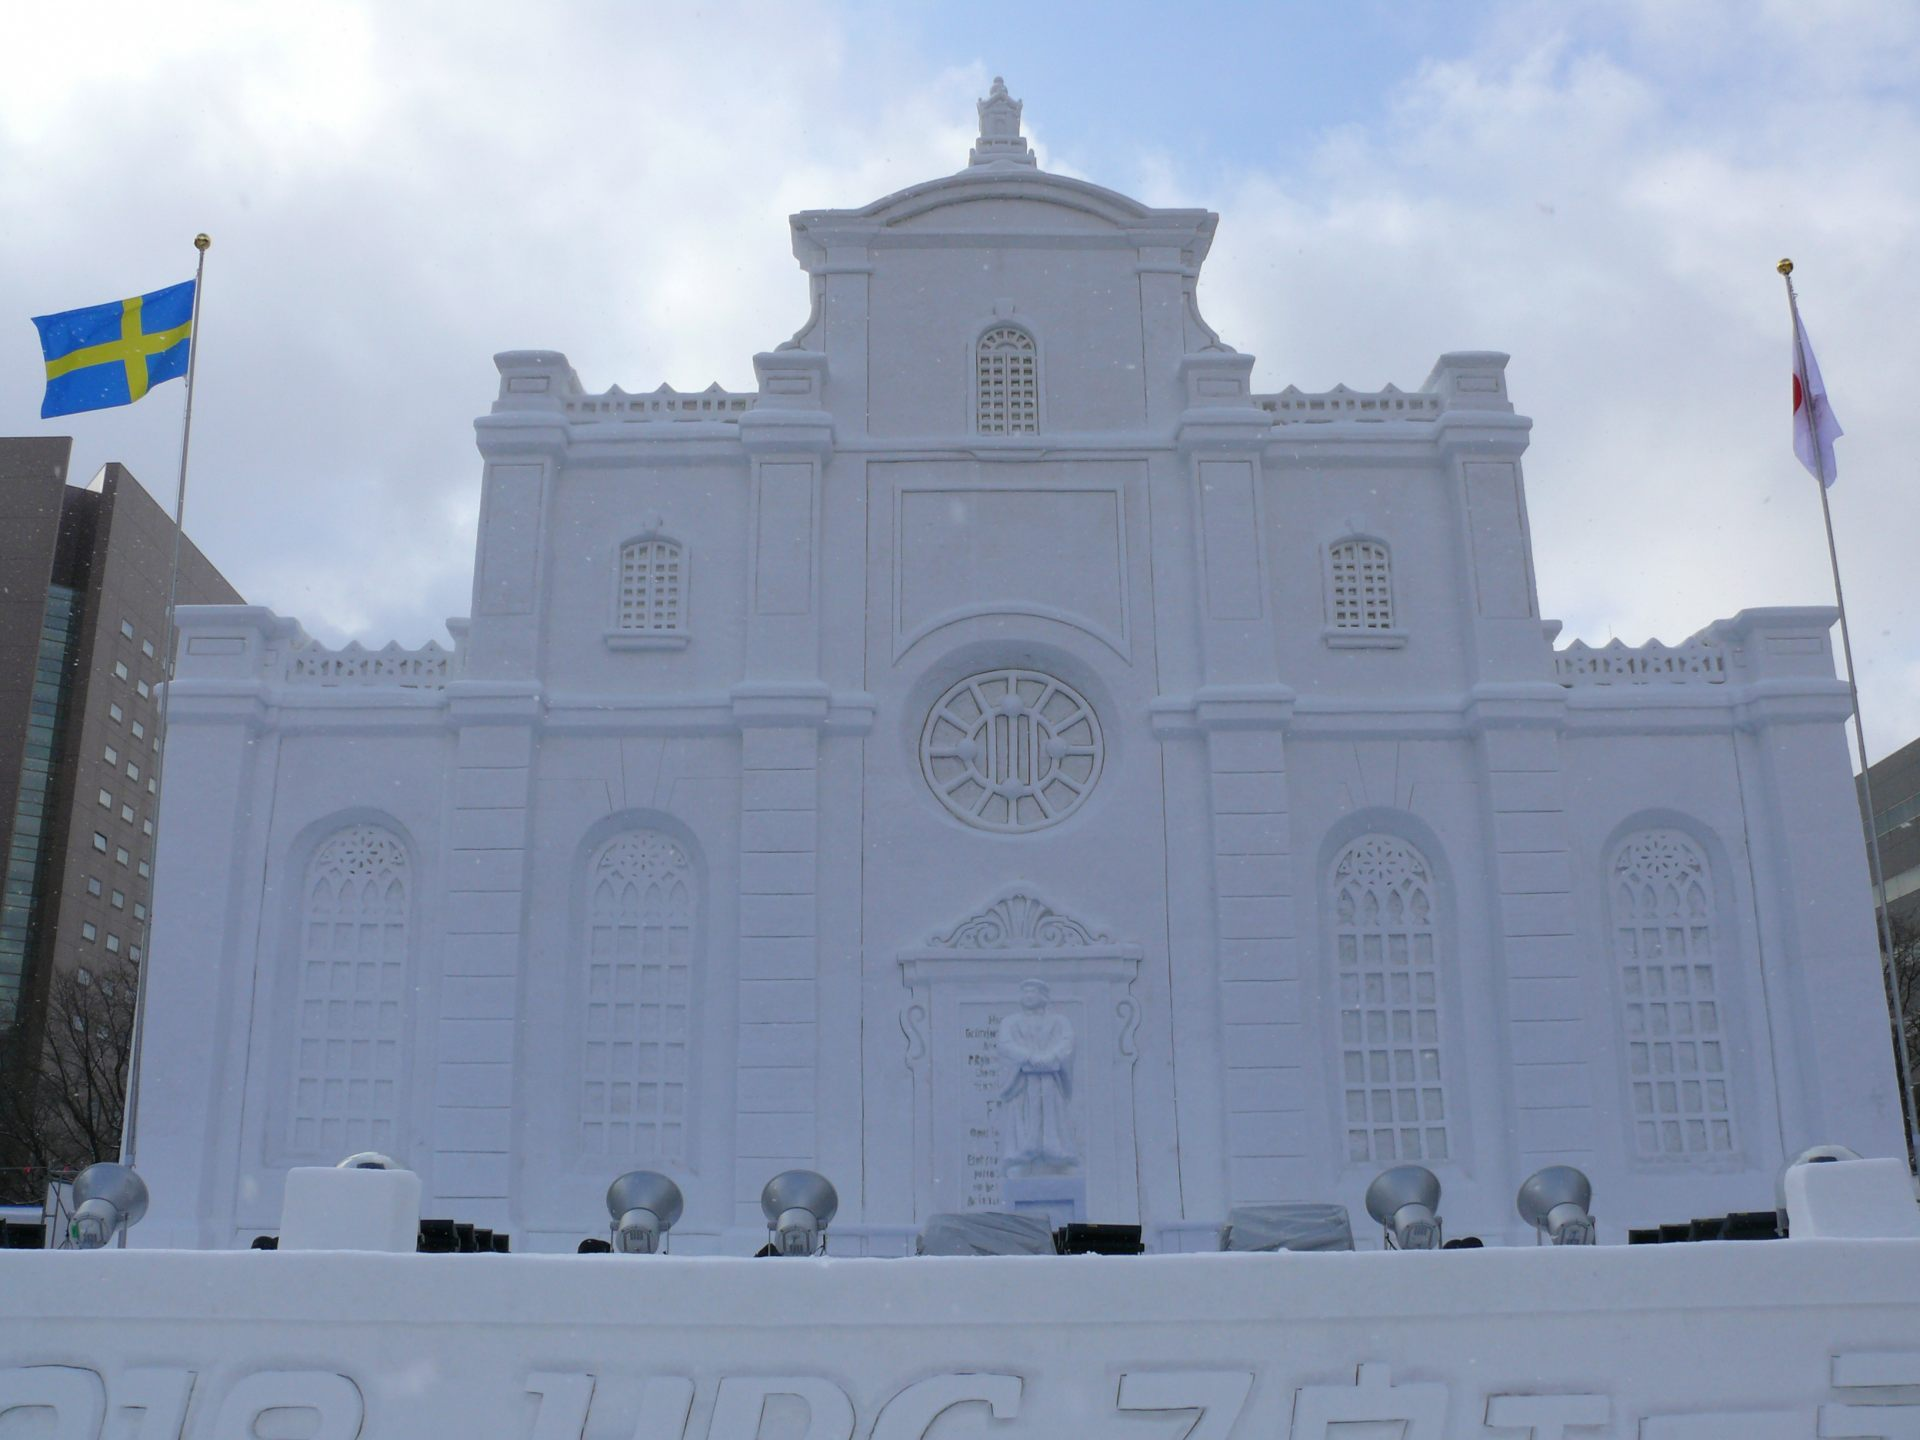 A large snow sculpture of Storkyrkan (Stockholm Cathedral). ©Hokkaido Broadcasting Co., Ltd.